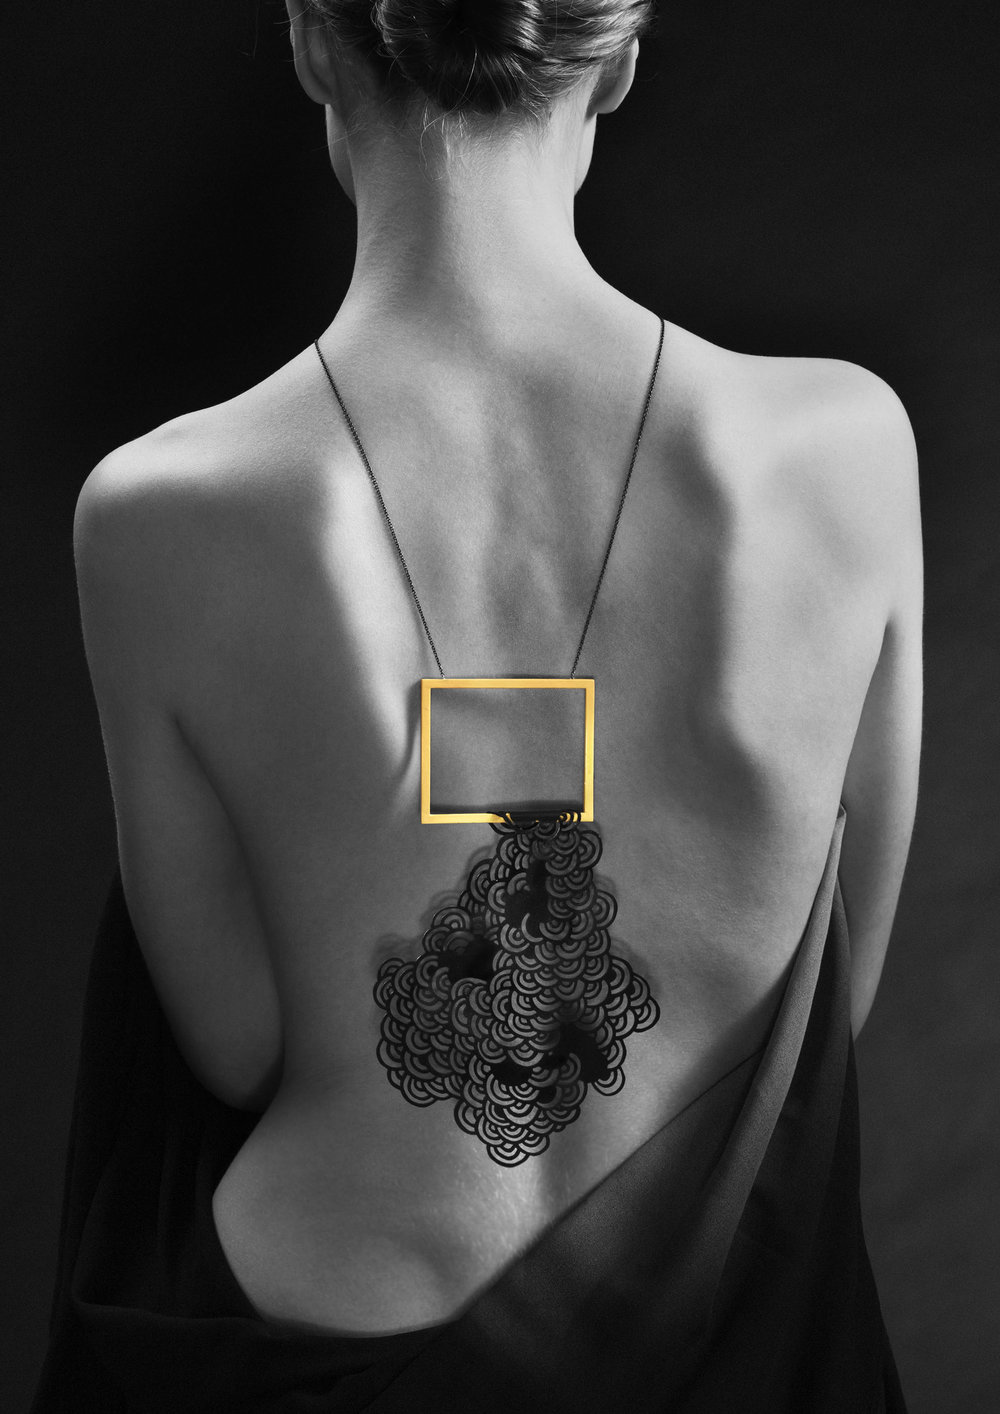 The Black Cloud. 2013  Pendant. Oxidized copper, laquered brass and xidized silver. Photo by Jan Alsaker.